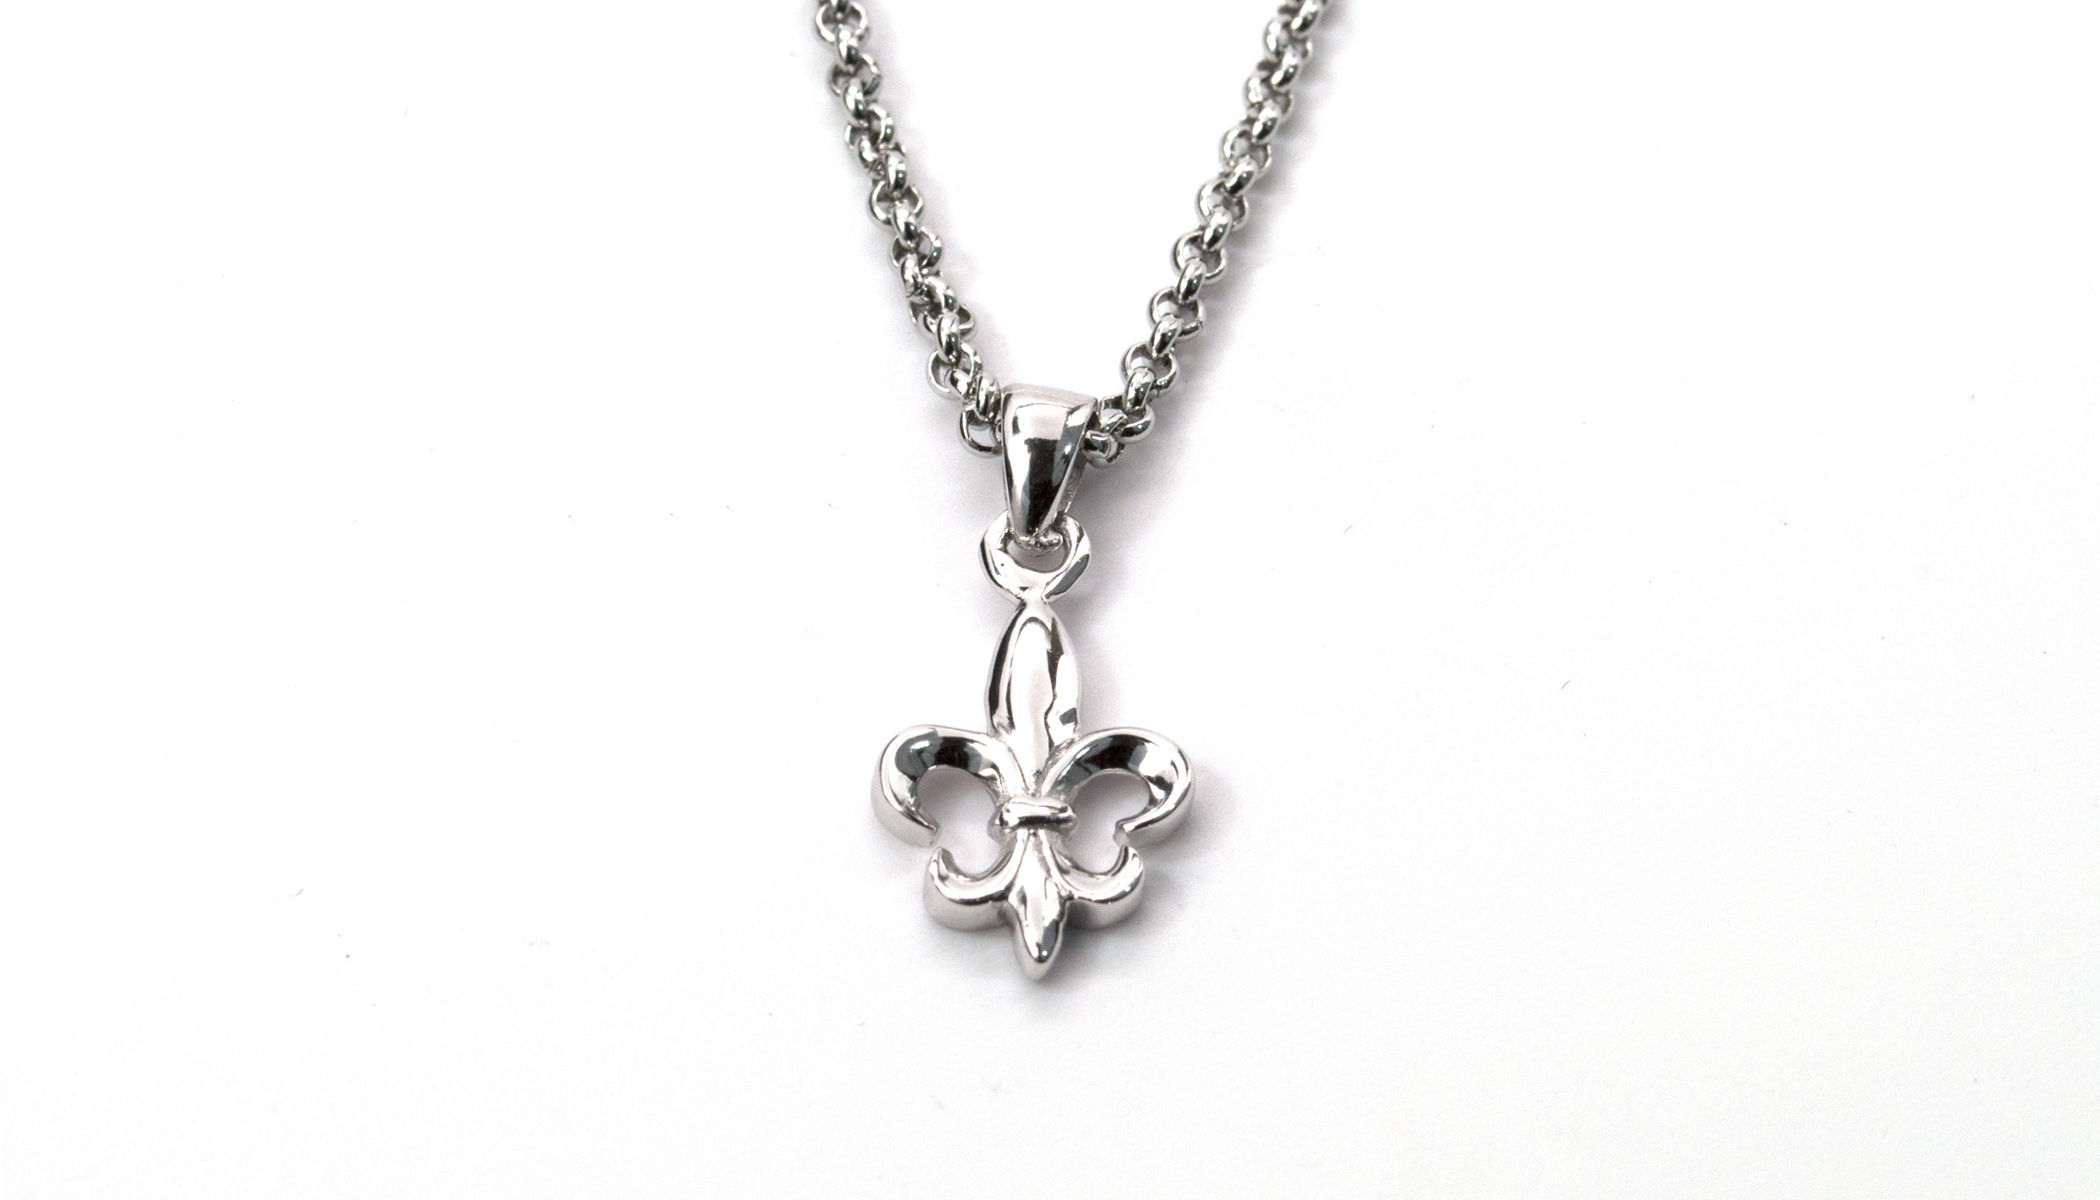 saints necklace product lyst in silver for oxidized miansai men metallic jewelry gallery normal